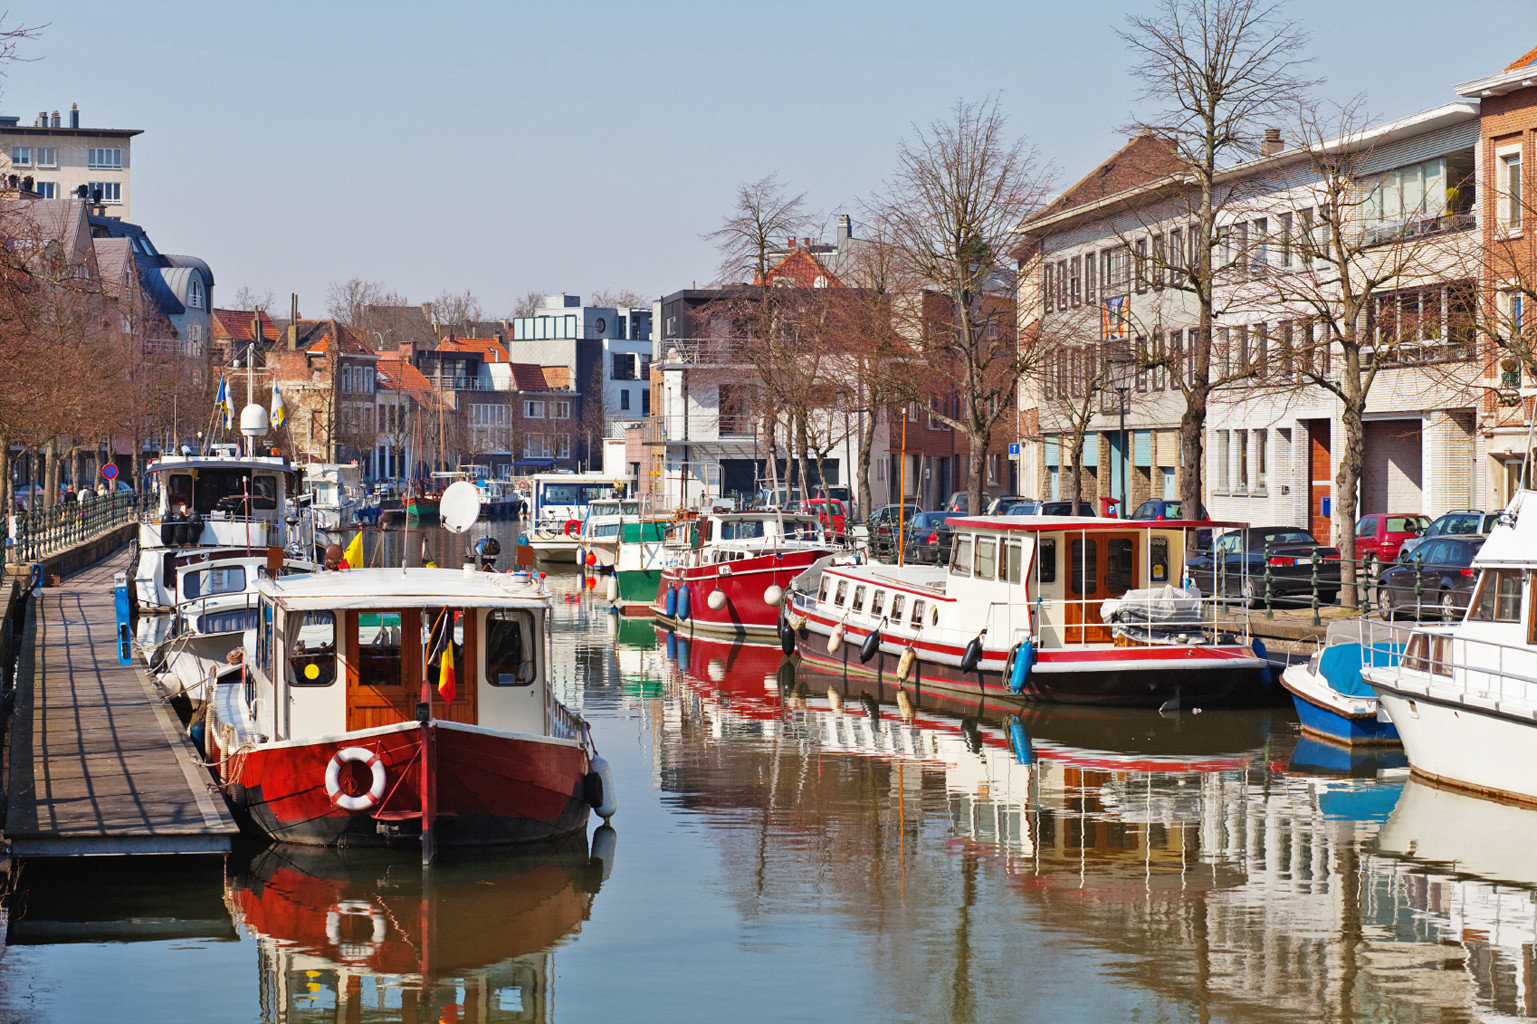 Architecture Boat City Cultural Historic River building sky water scene Canal Harbor waterway vehicle Town channel cityscape docked travel